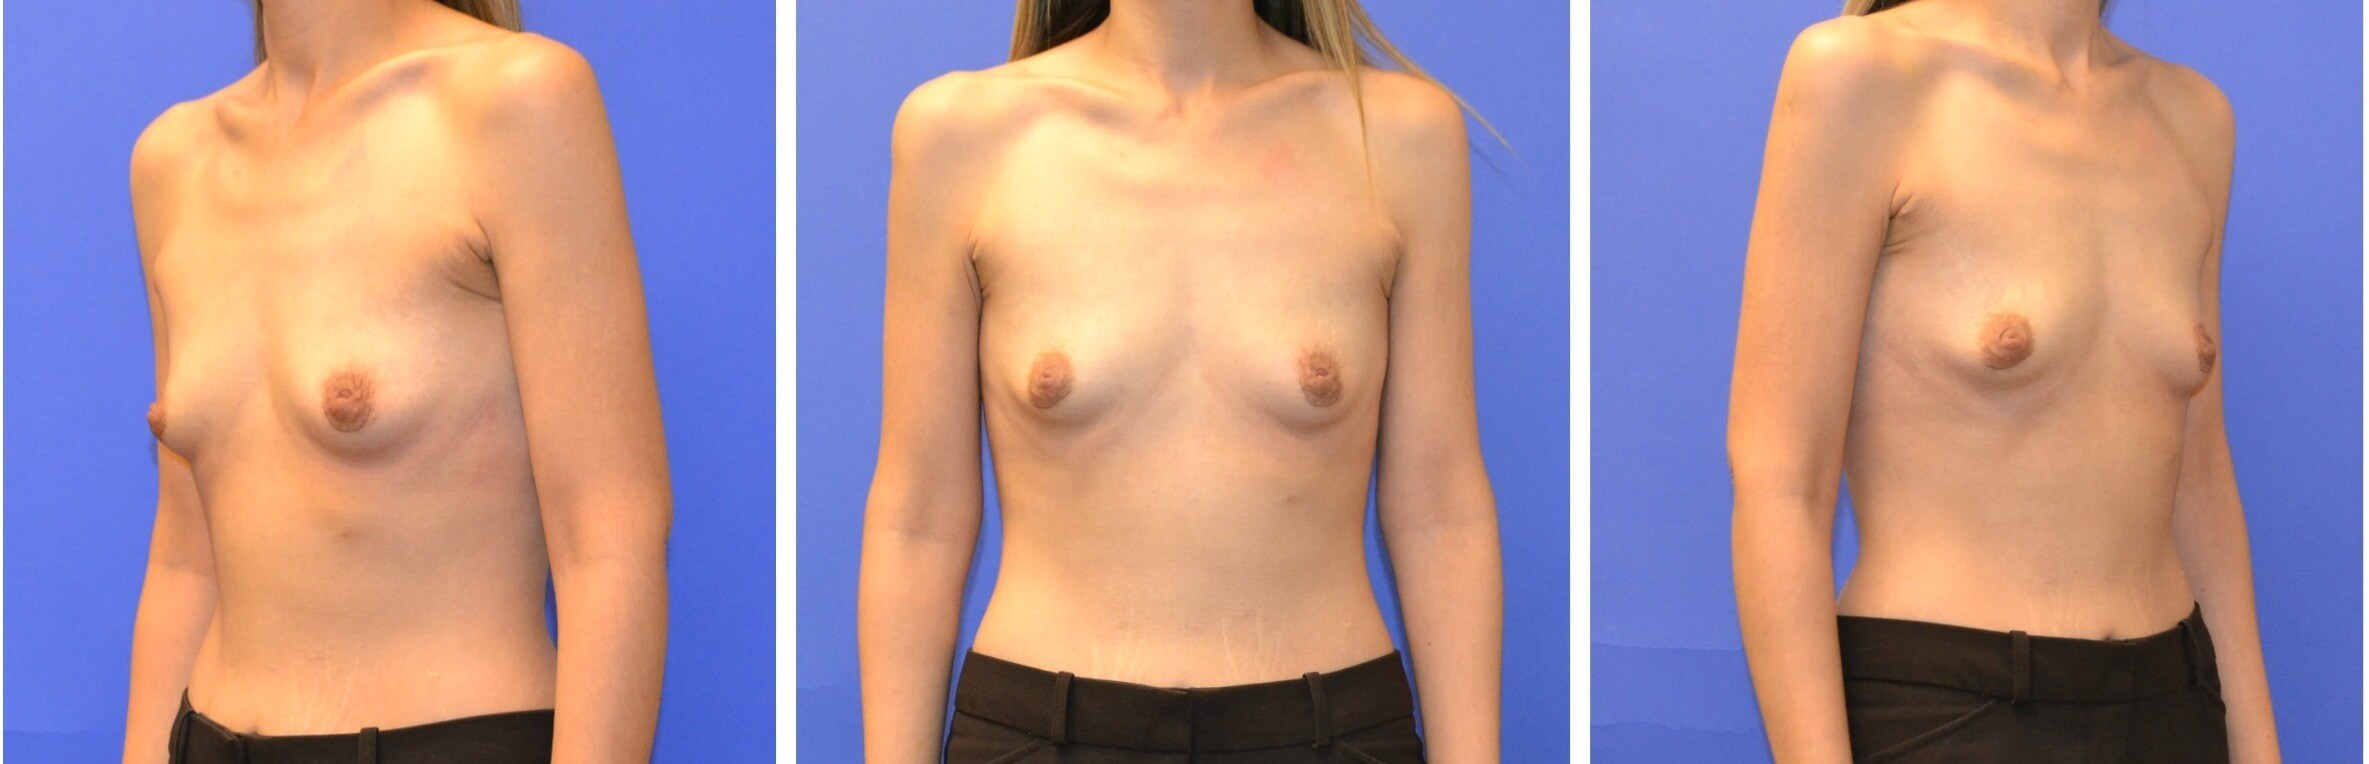 Breast Reconstruction - Left Before